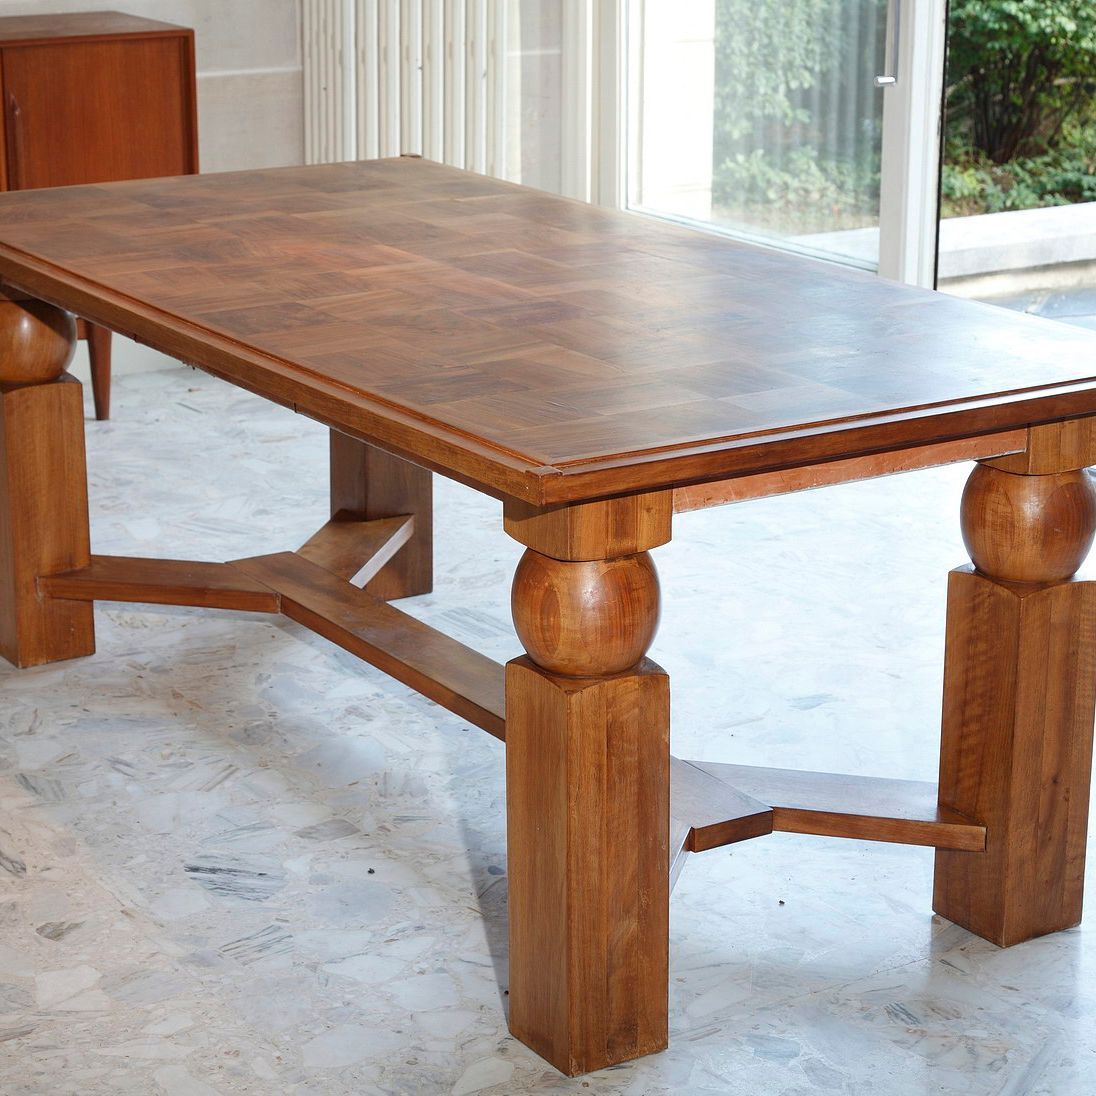 Extendable natural wood dining table by baptistin spade 1950s 5 6684 00 price per piece